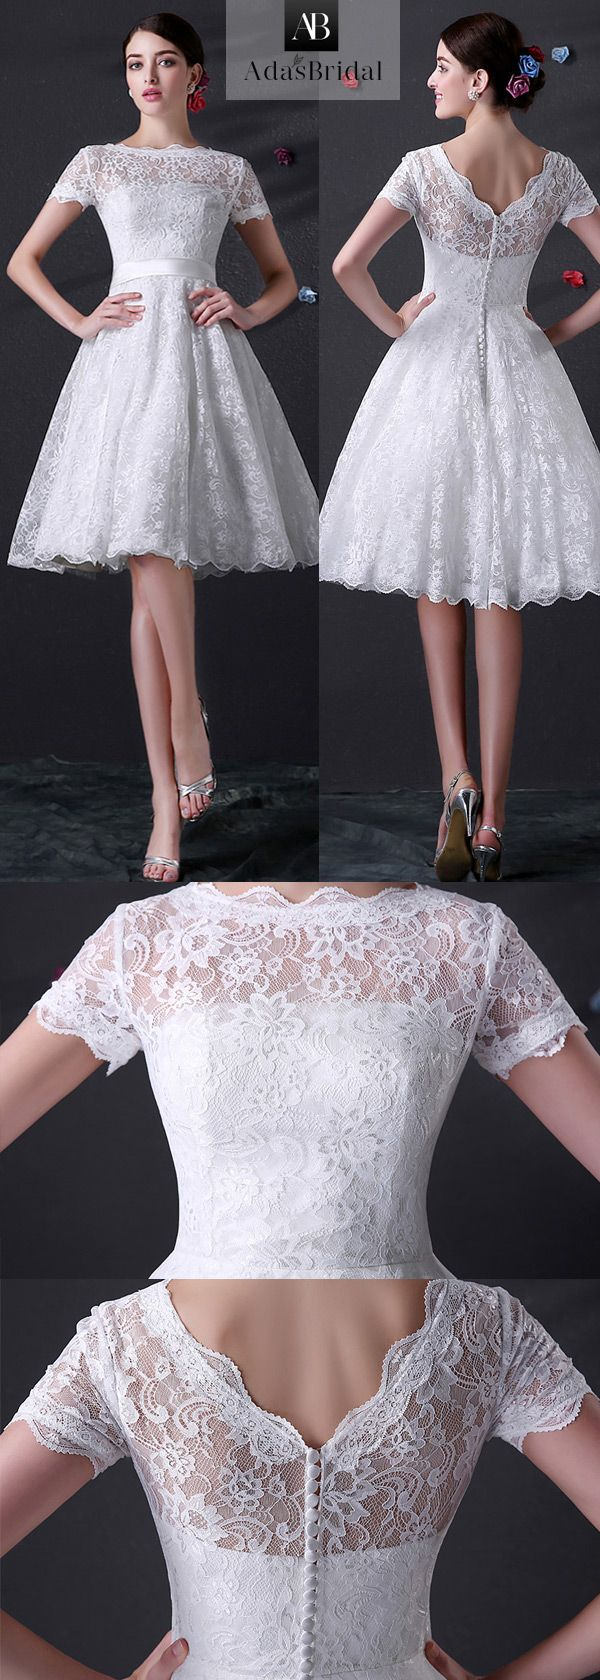 Knee length full lace wedding dress with short sleeves whole lace